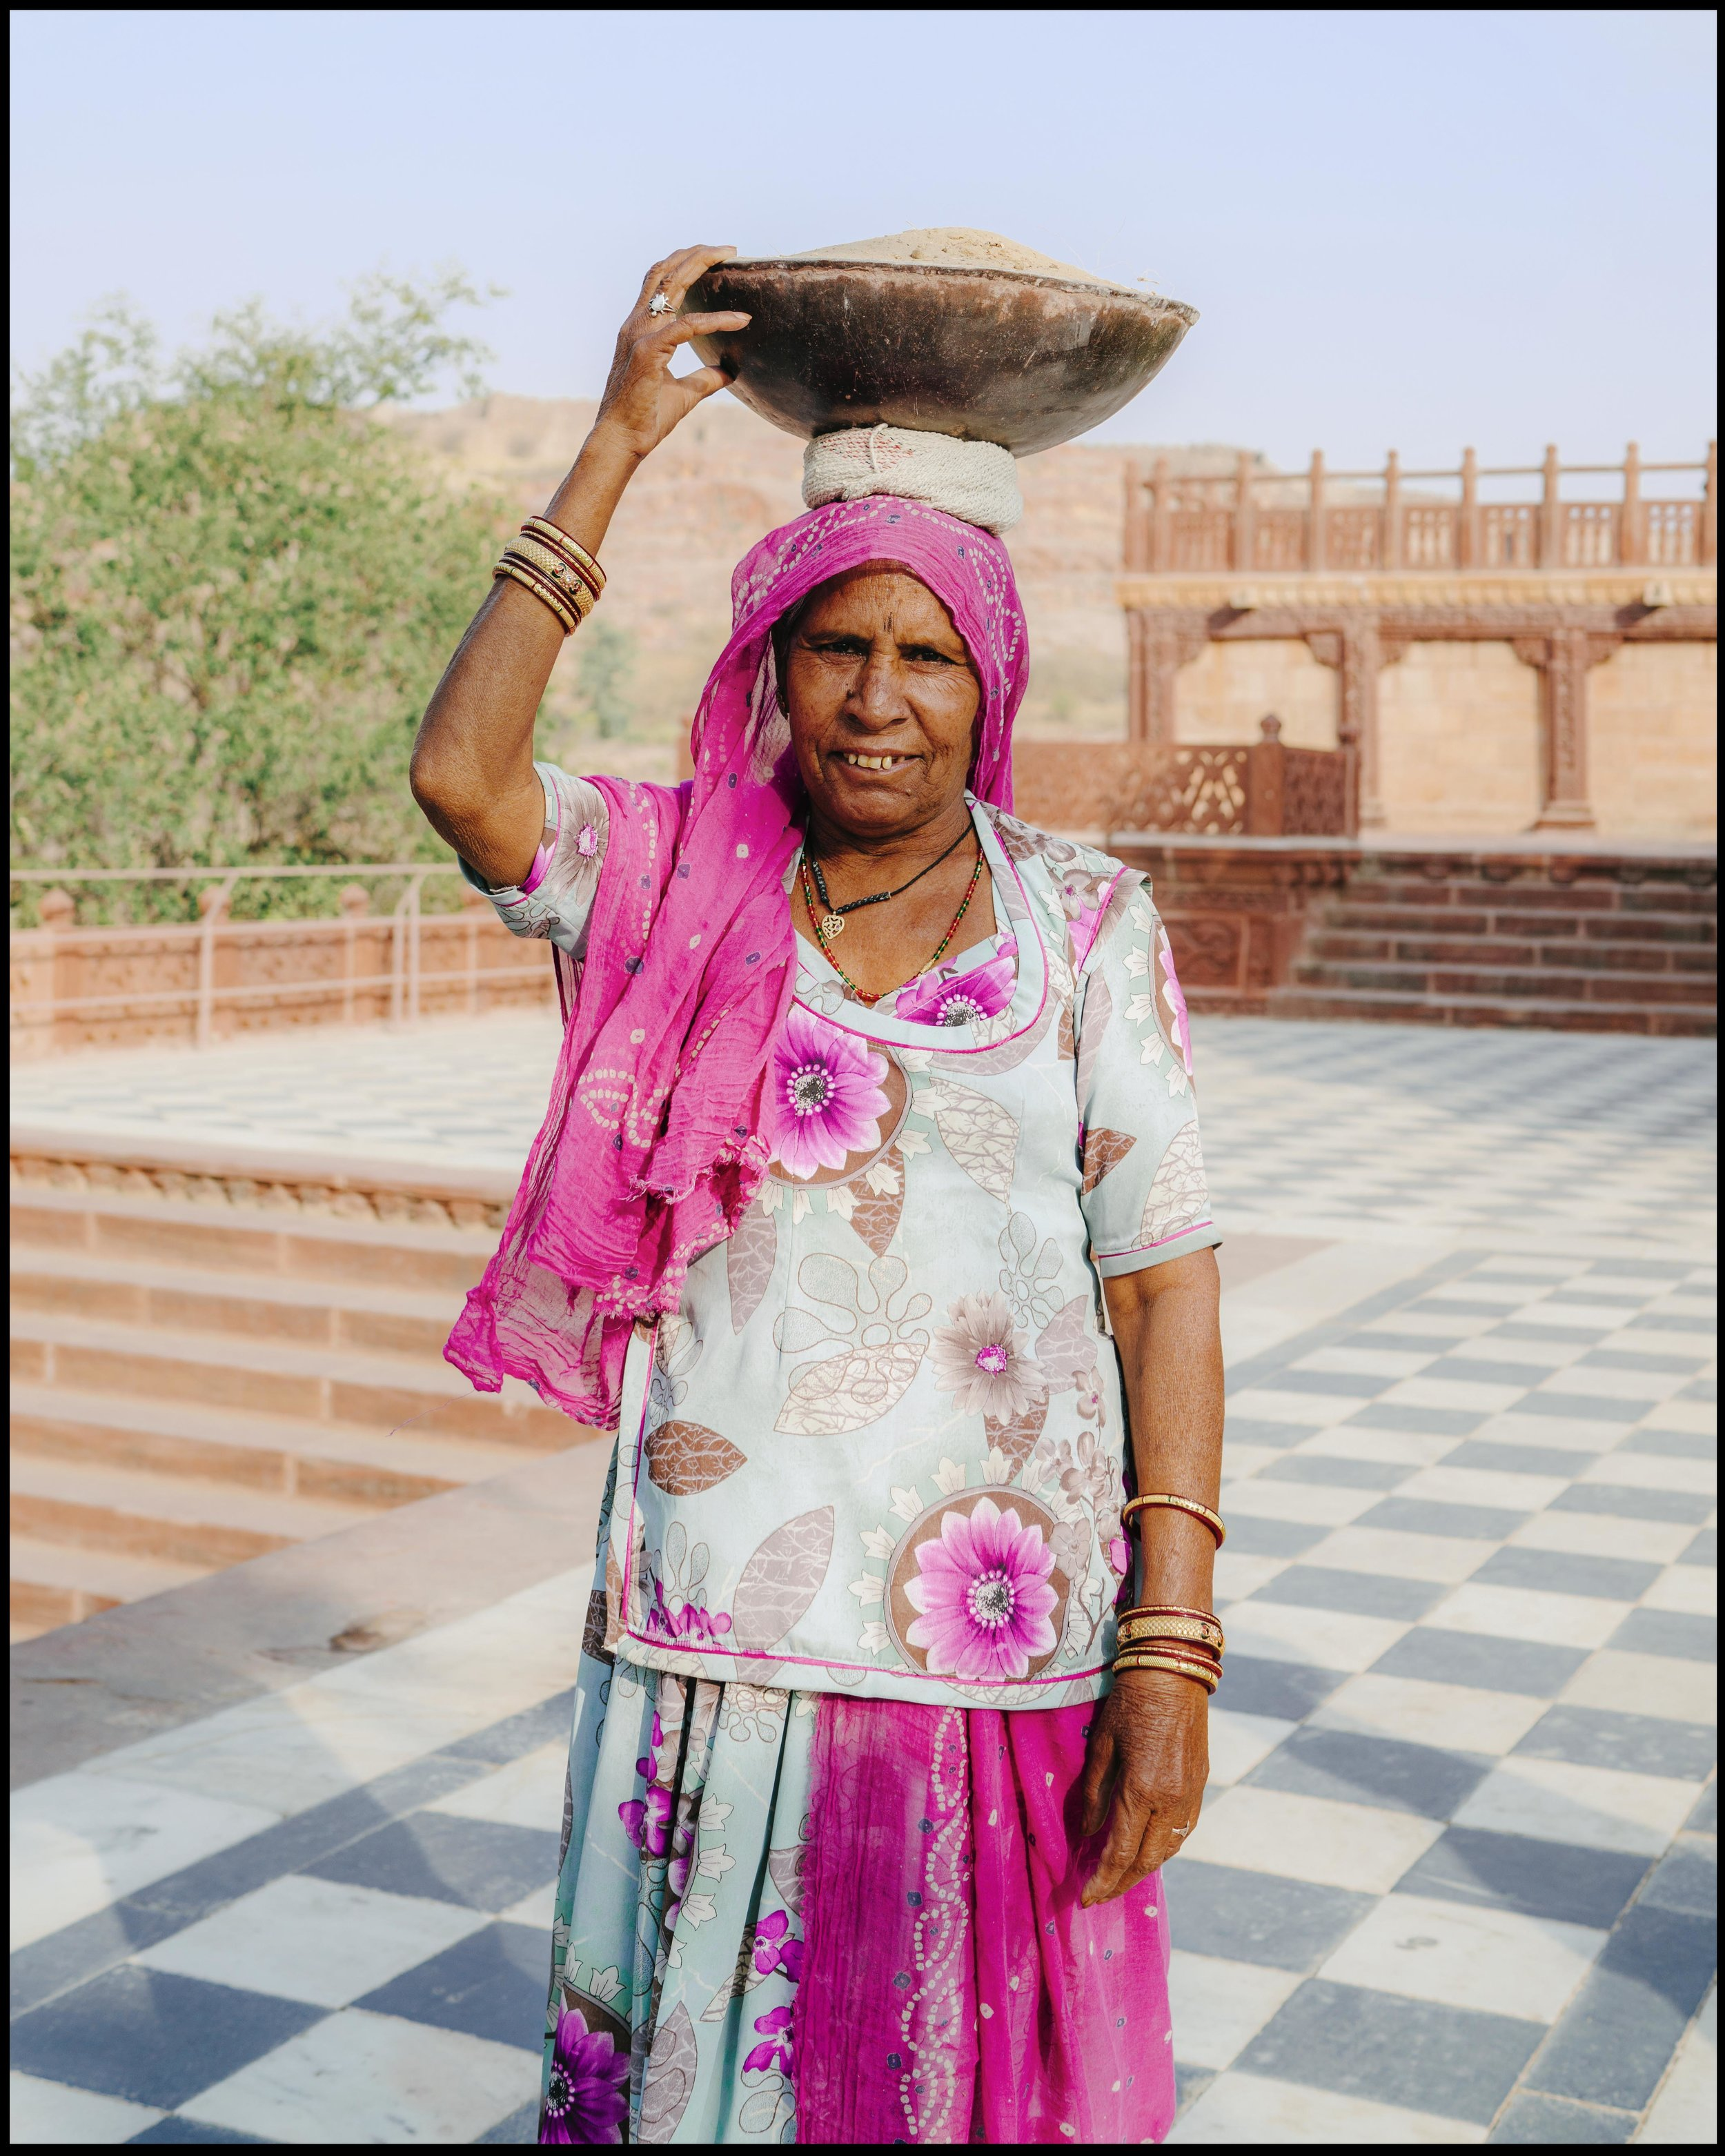 Woman in Jodhpur